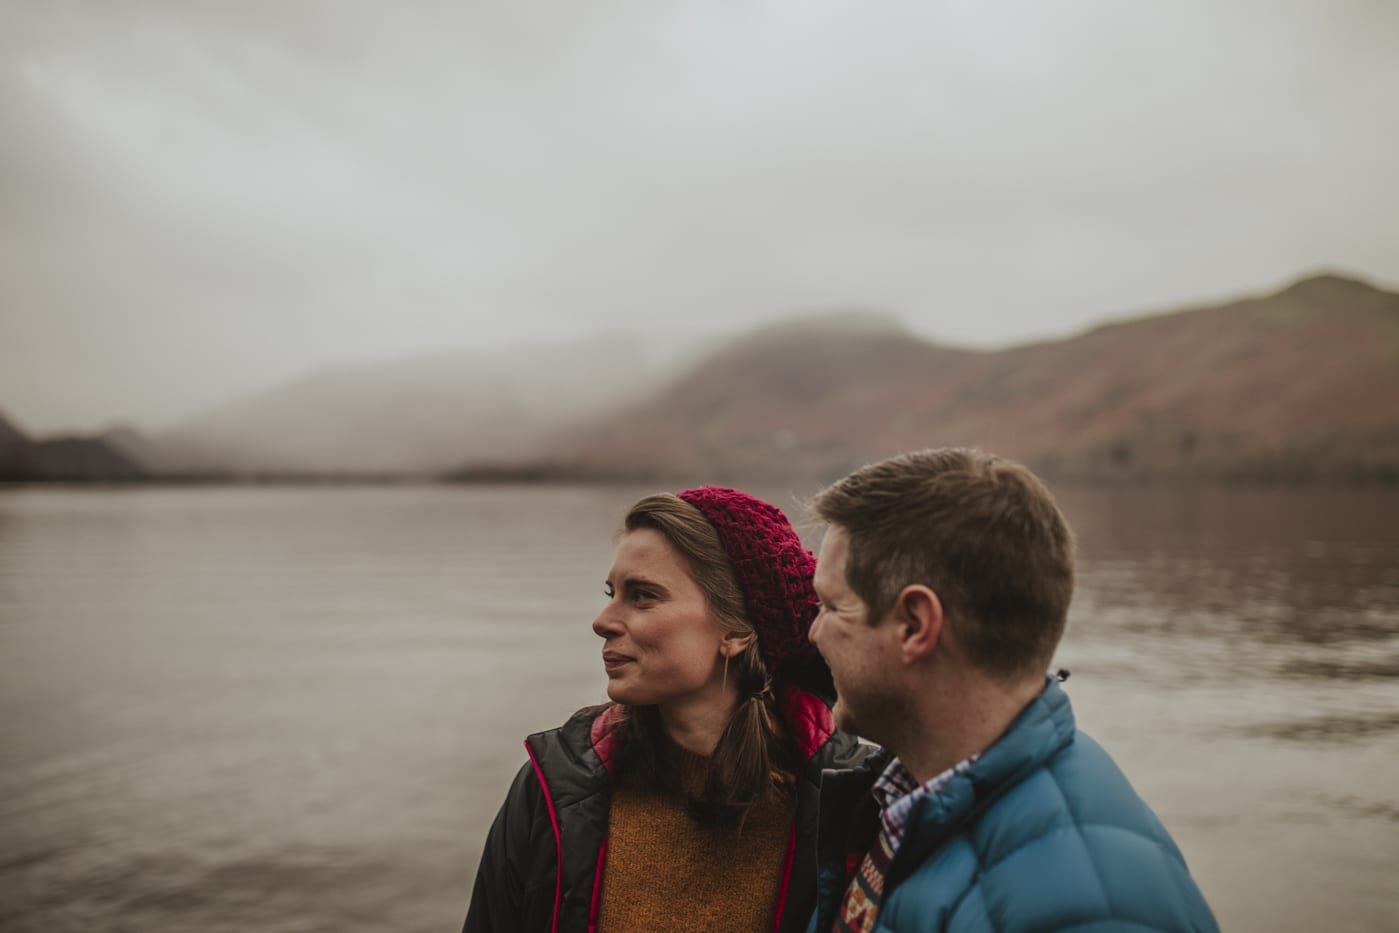 Couple looking out over lake and scenery in Cumbria by Joshua Wyborn